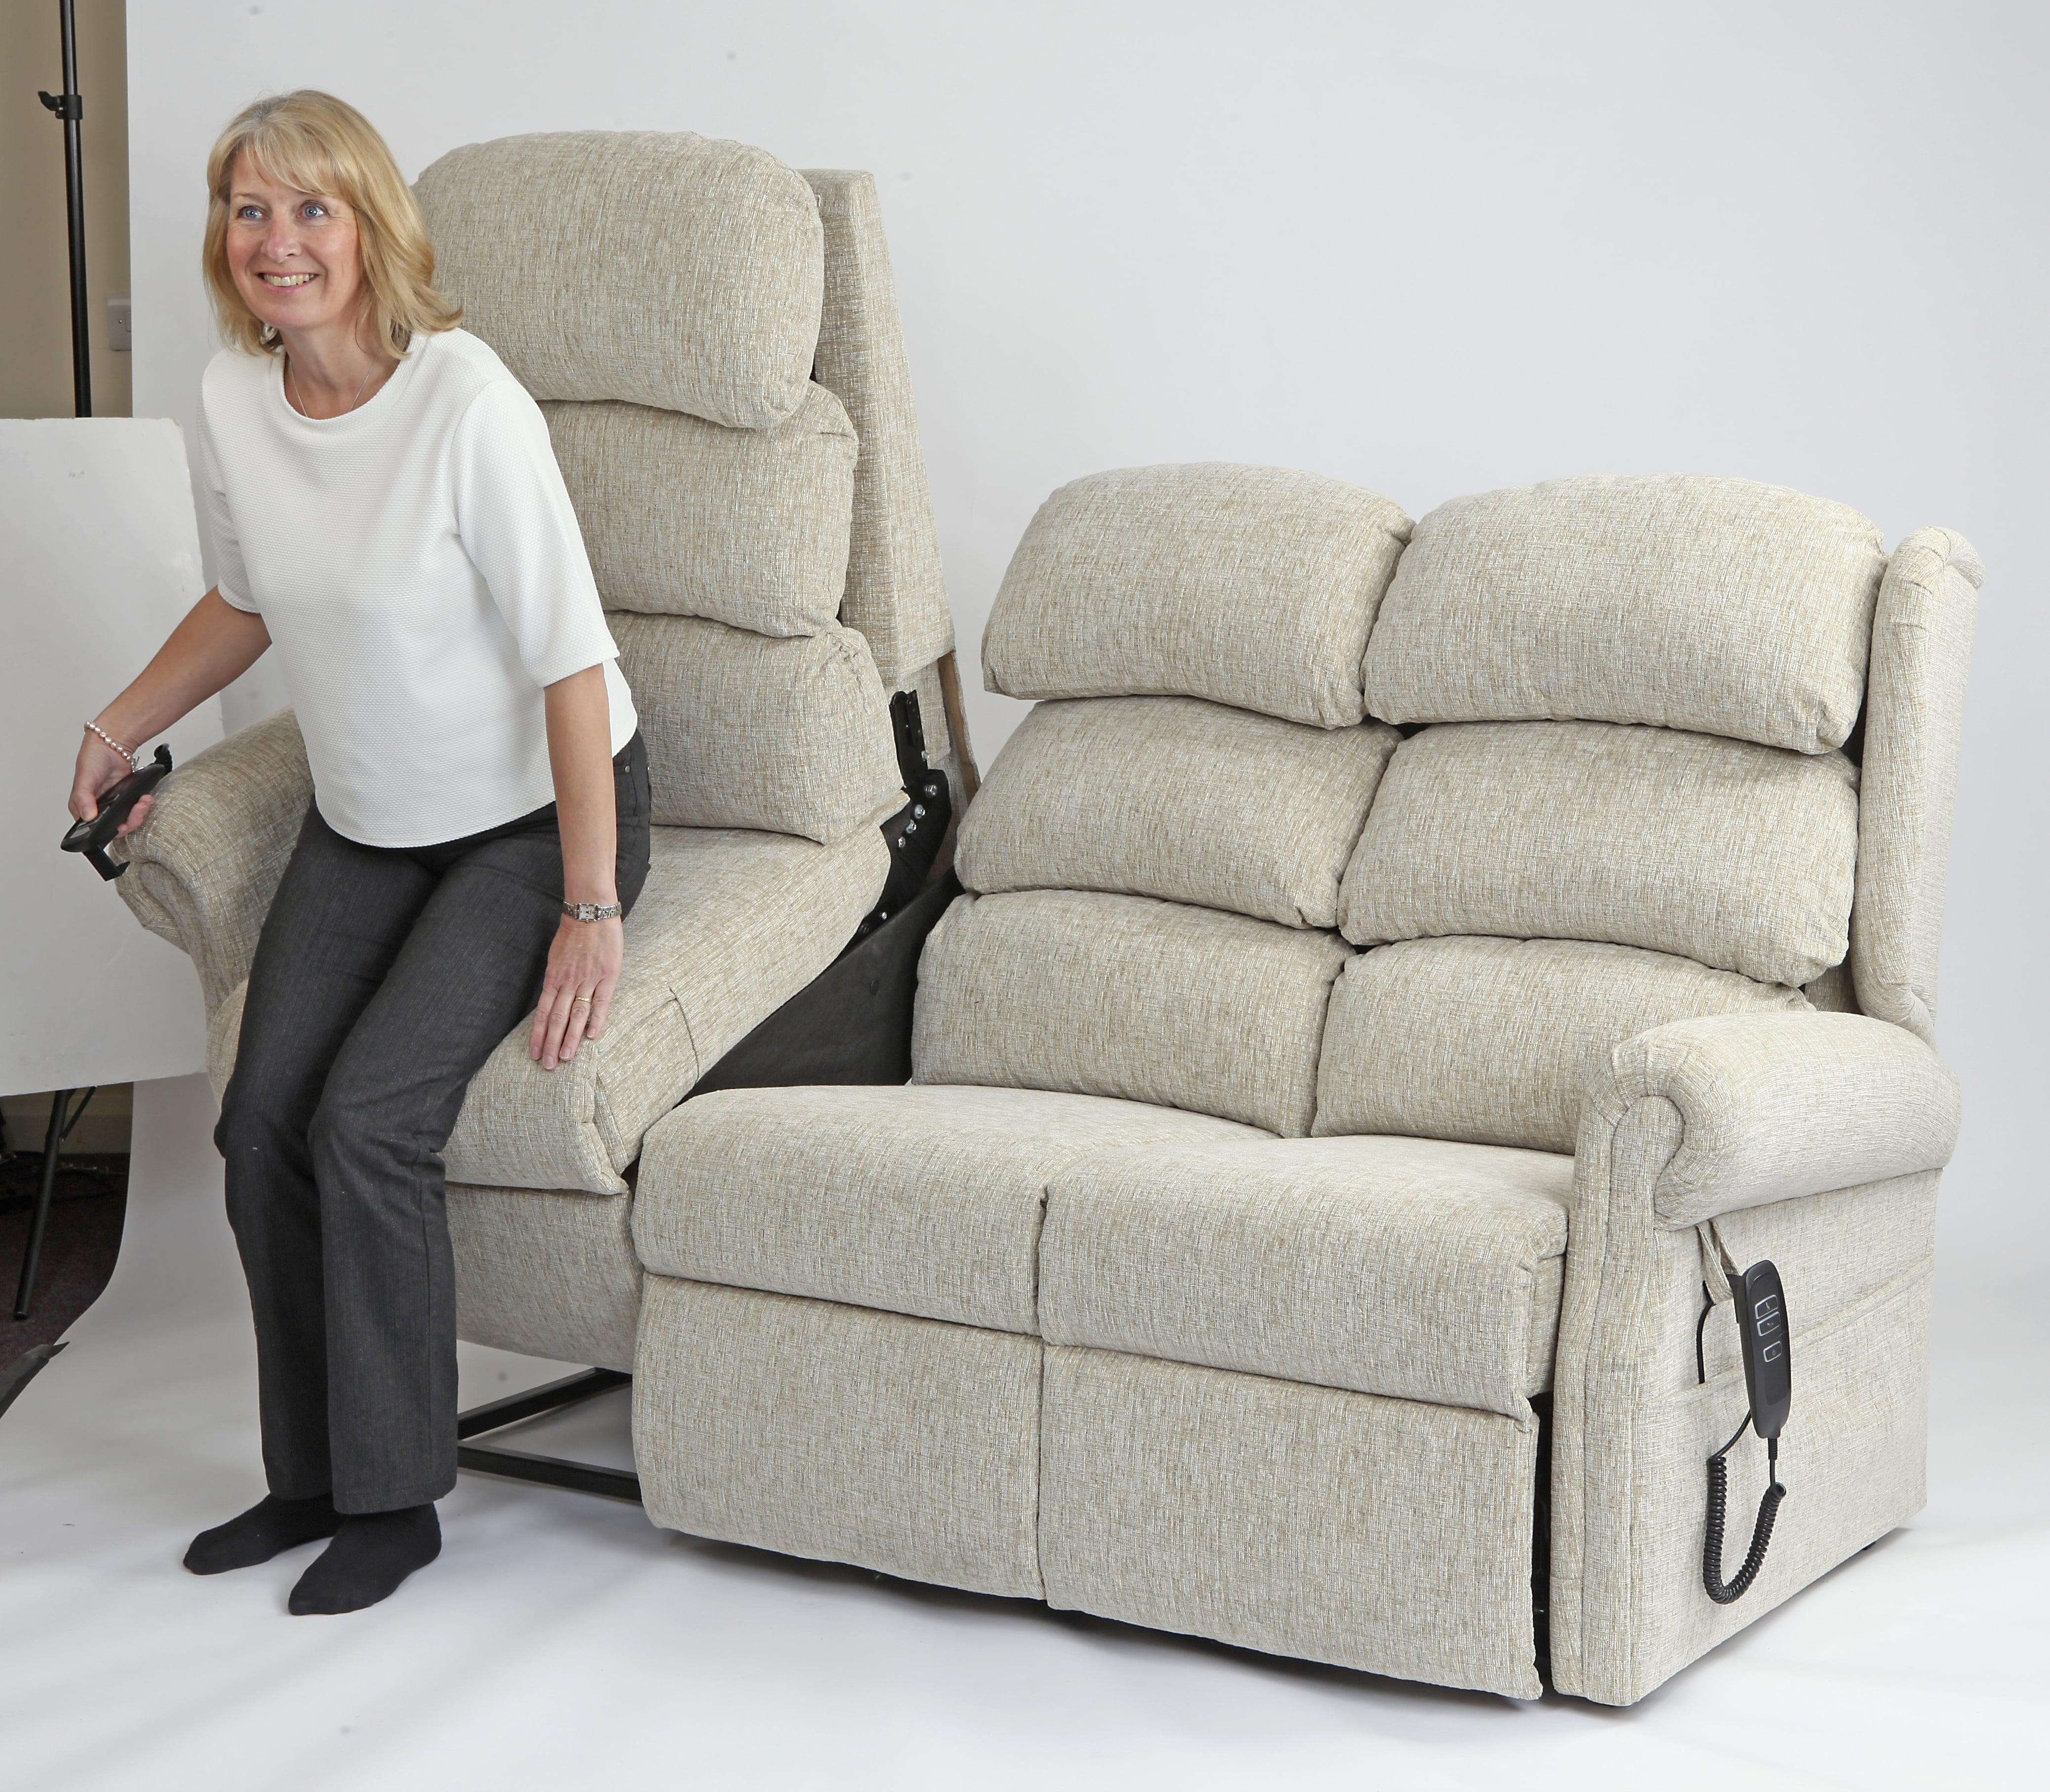 Riser Recliner Settees Yorkshire Care Equipment